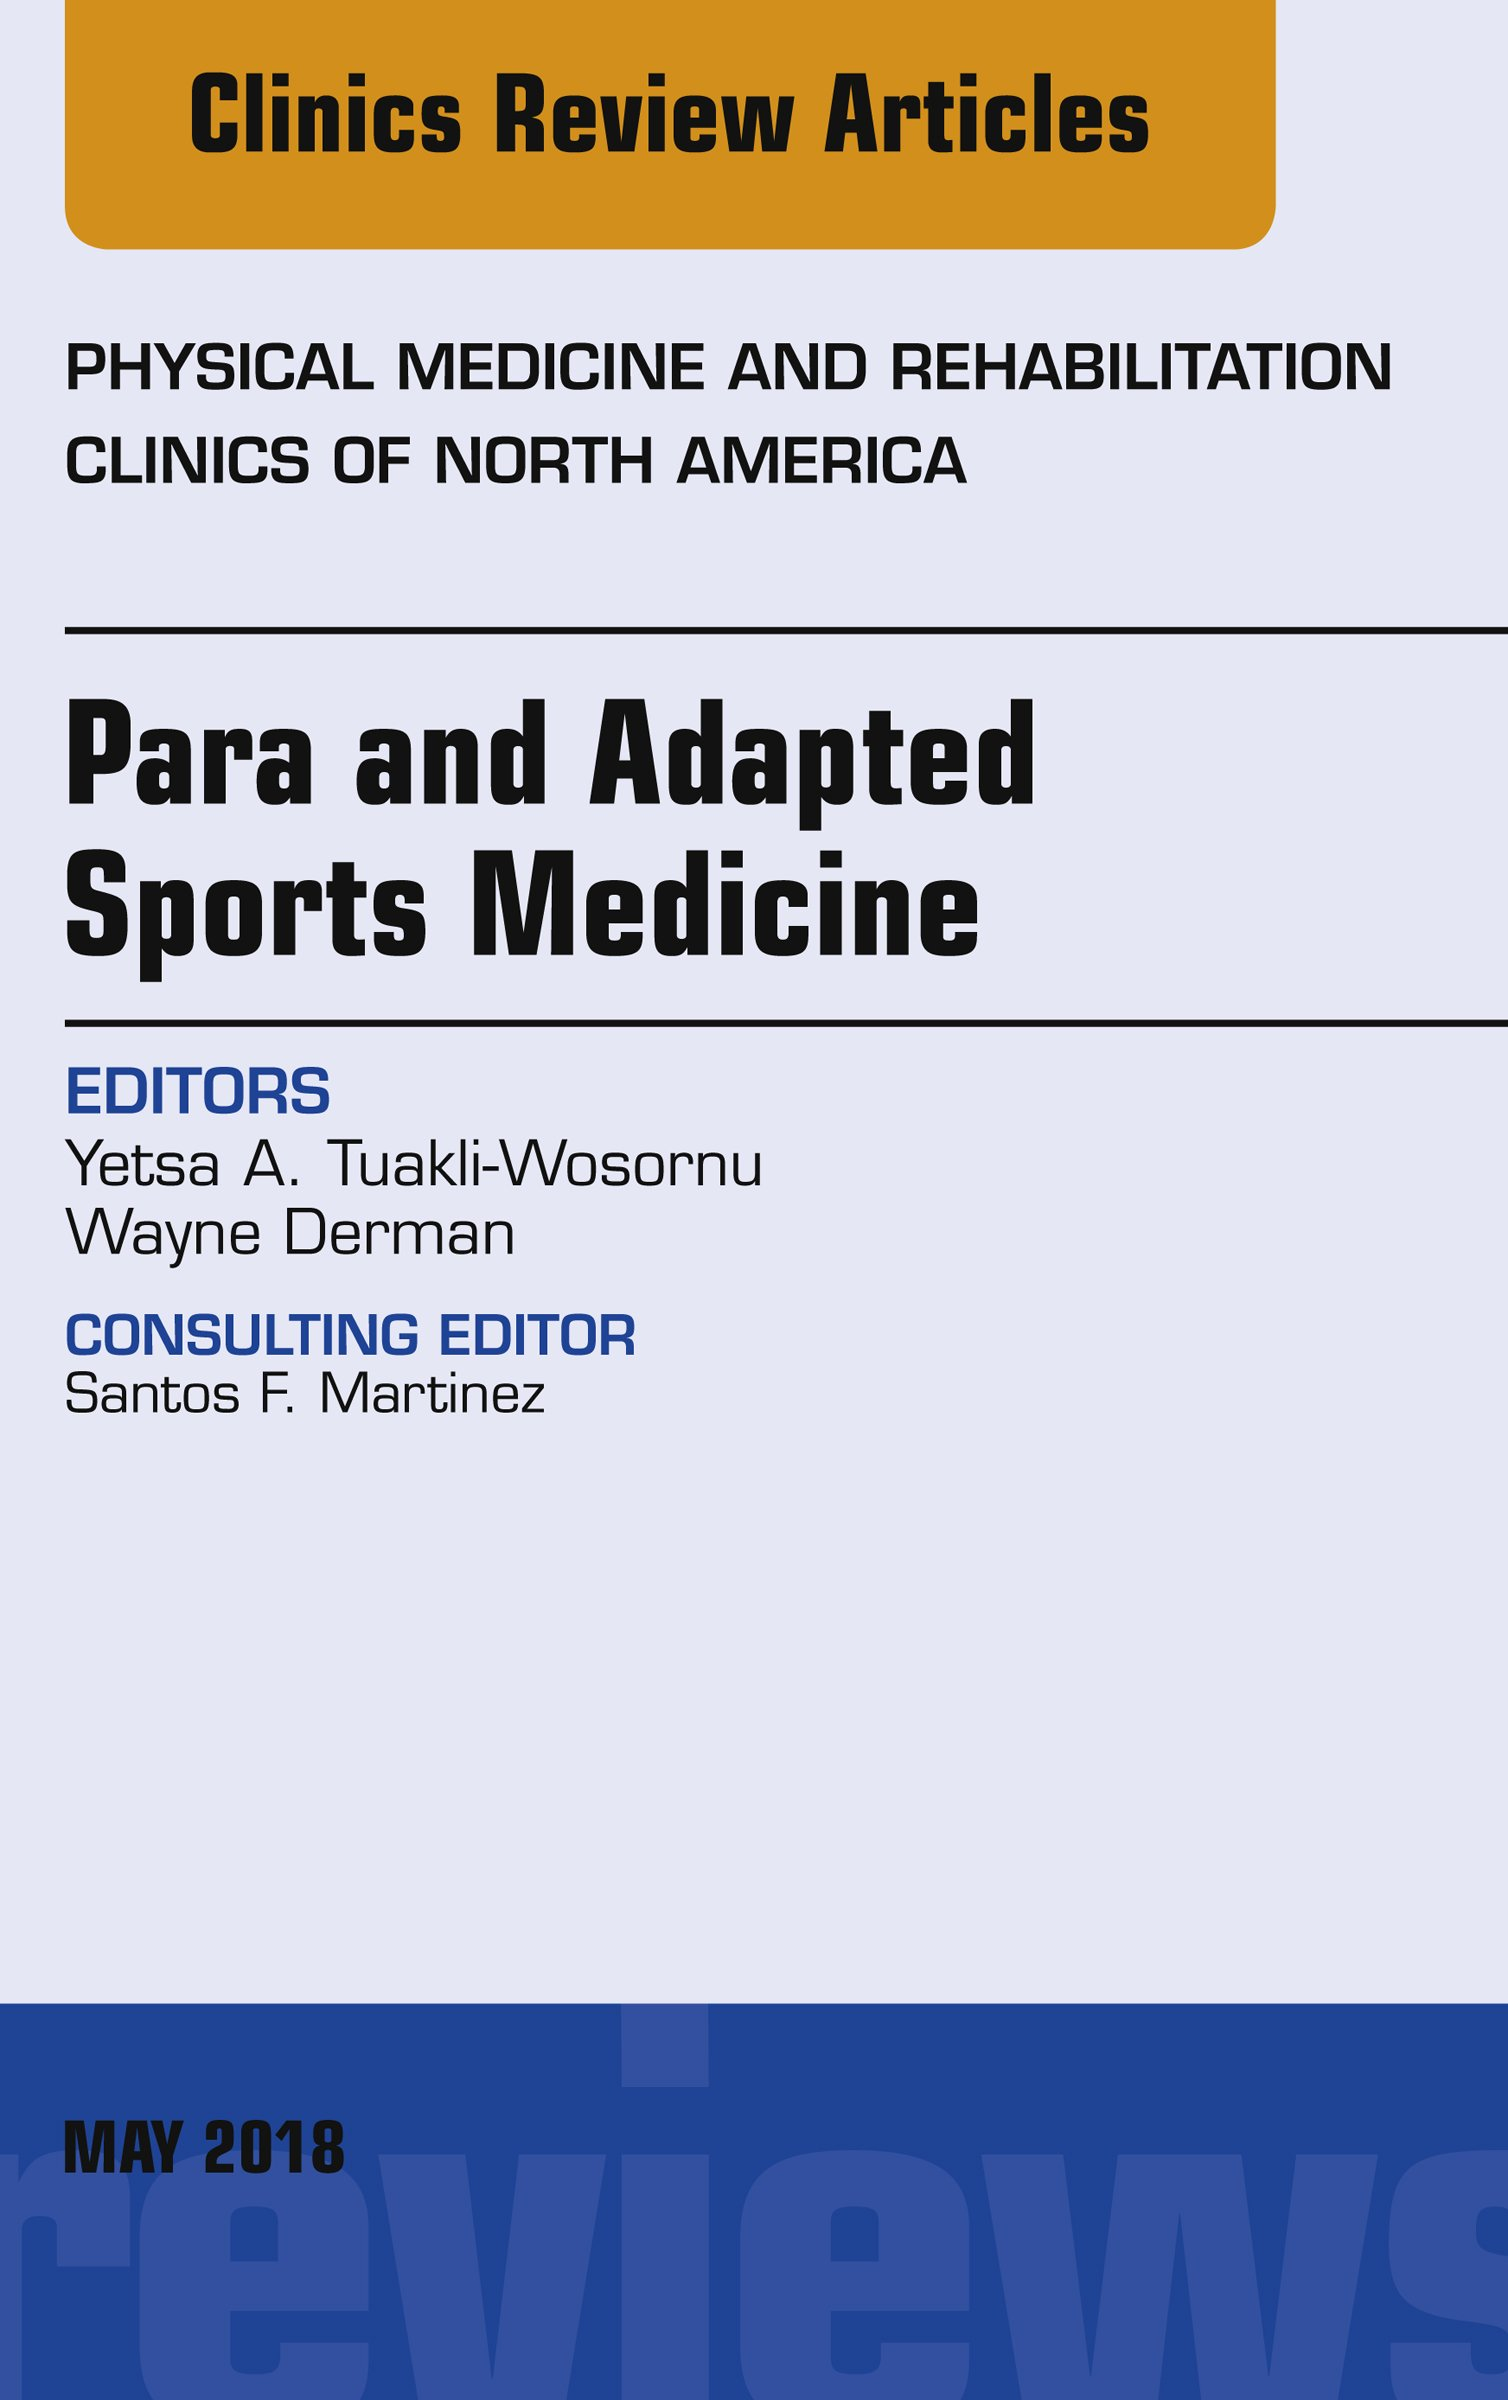 Para and Adapted Sports Medicine, An Issue of Physical Medicine and Rehabilitation Clinics of North America (The Clinics: Orthopedics Book 29)